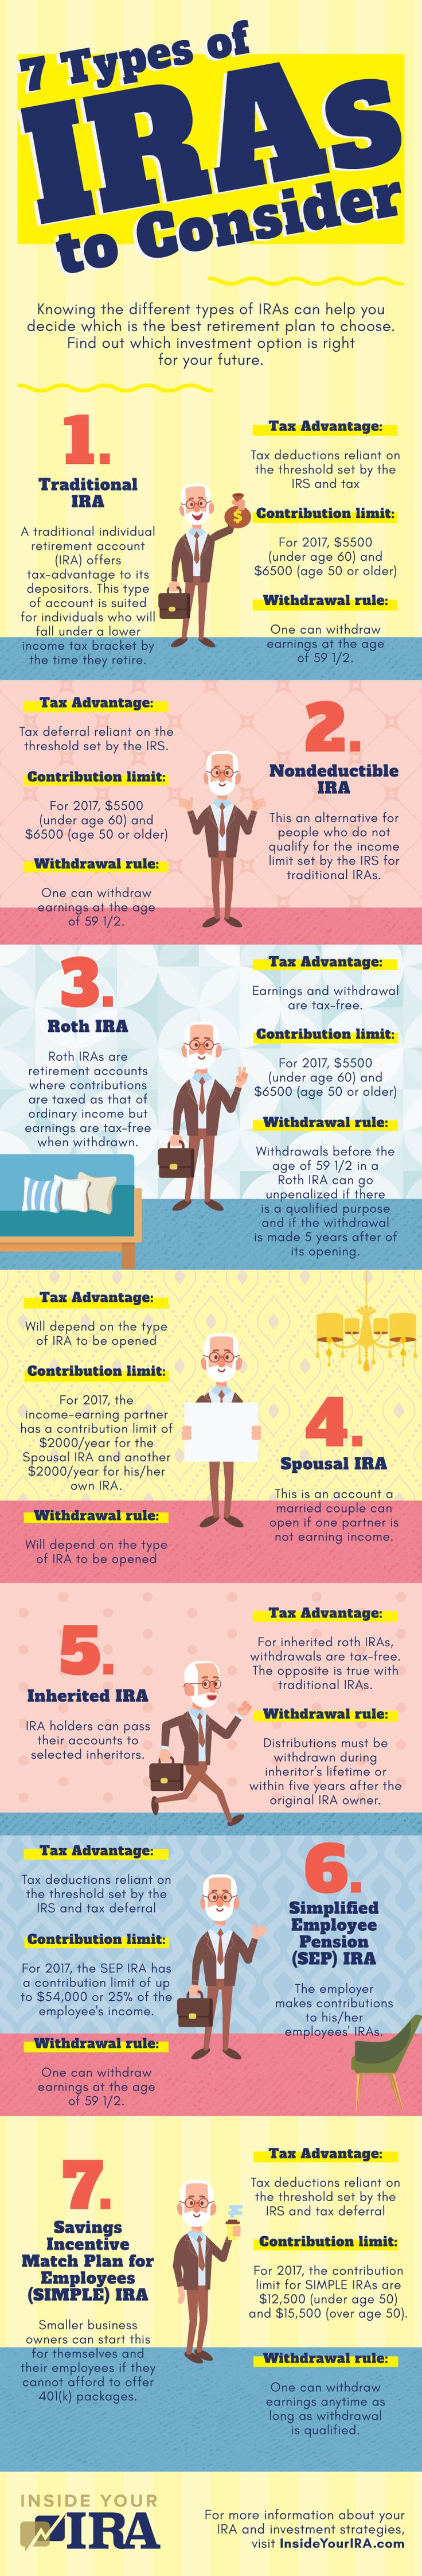 Different IRA rules apply depending on which type of IRA. There are several types, but the most common are Roth IRA and Traditional IRA.   https://insideyourira.com/traditional-ira-rules/?utm_source=pin